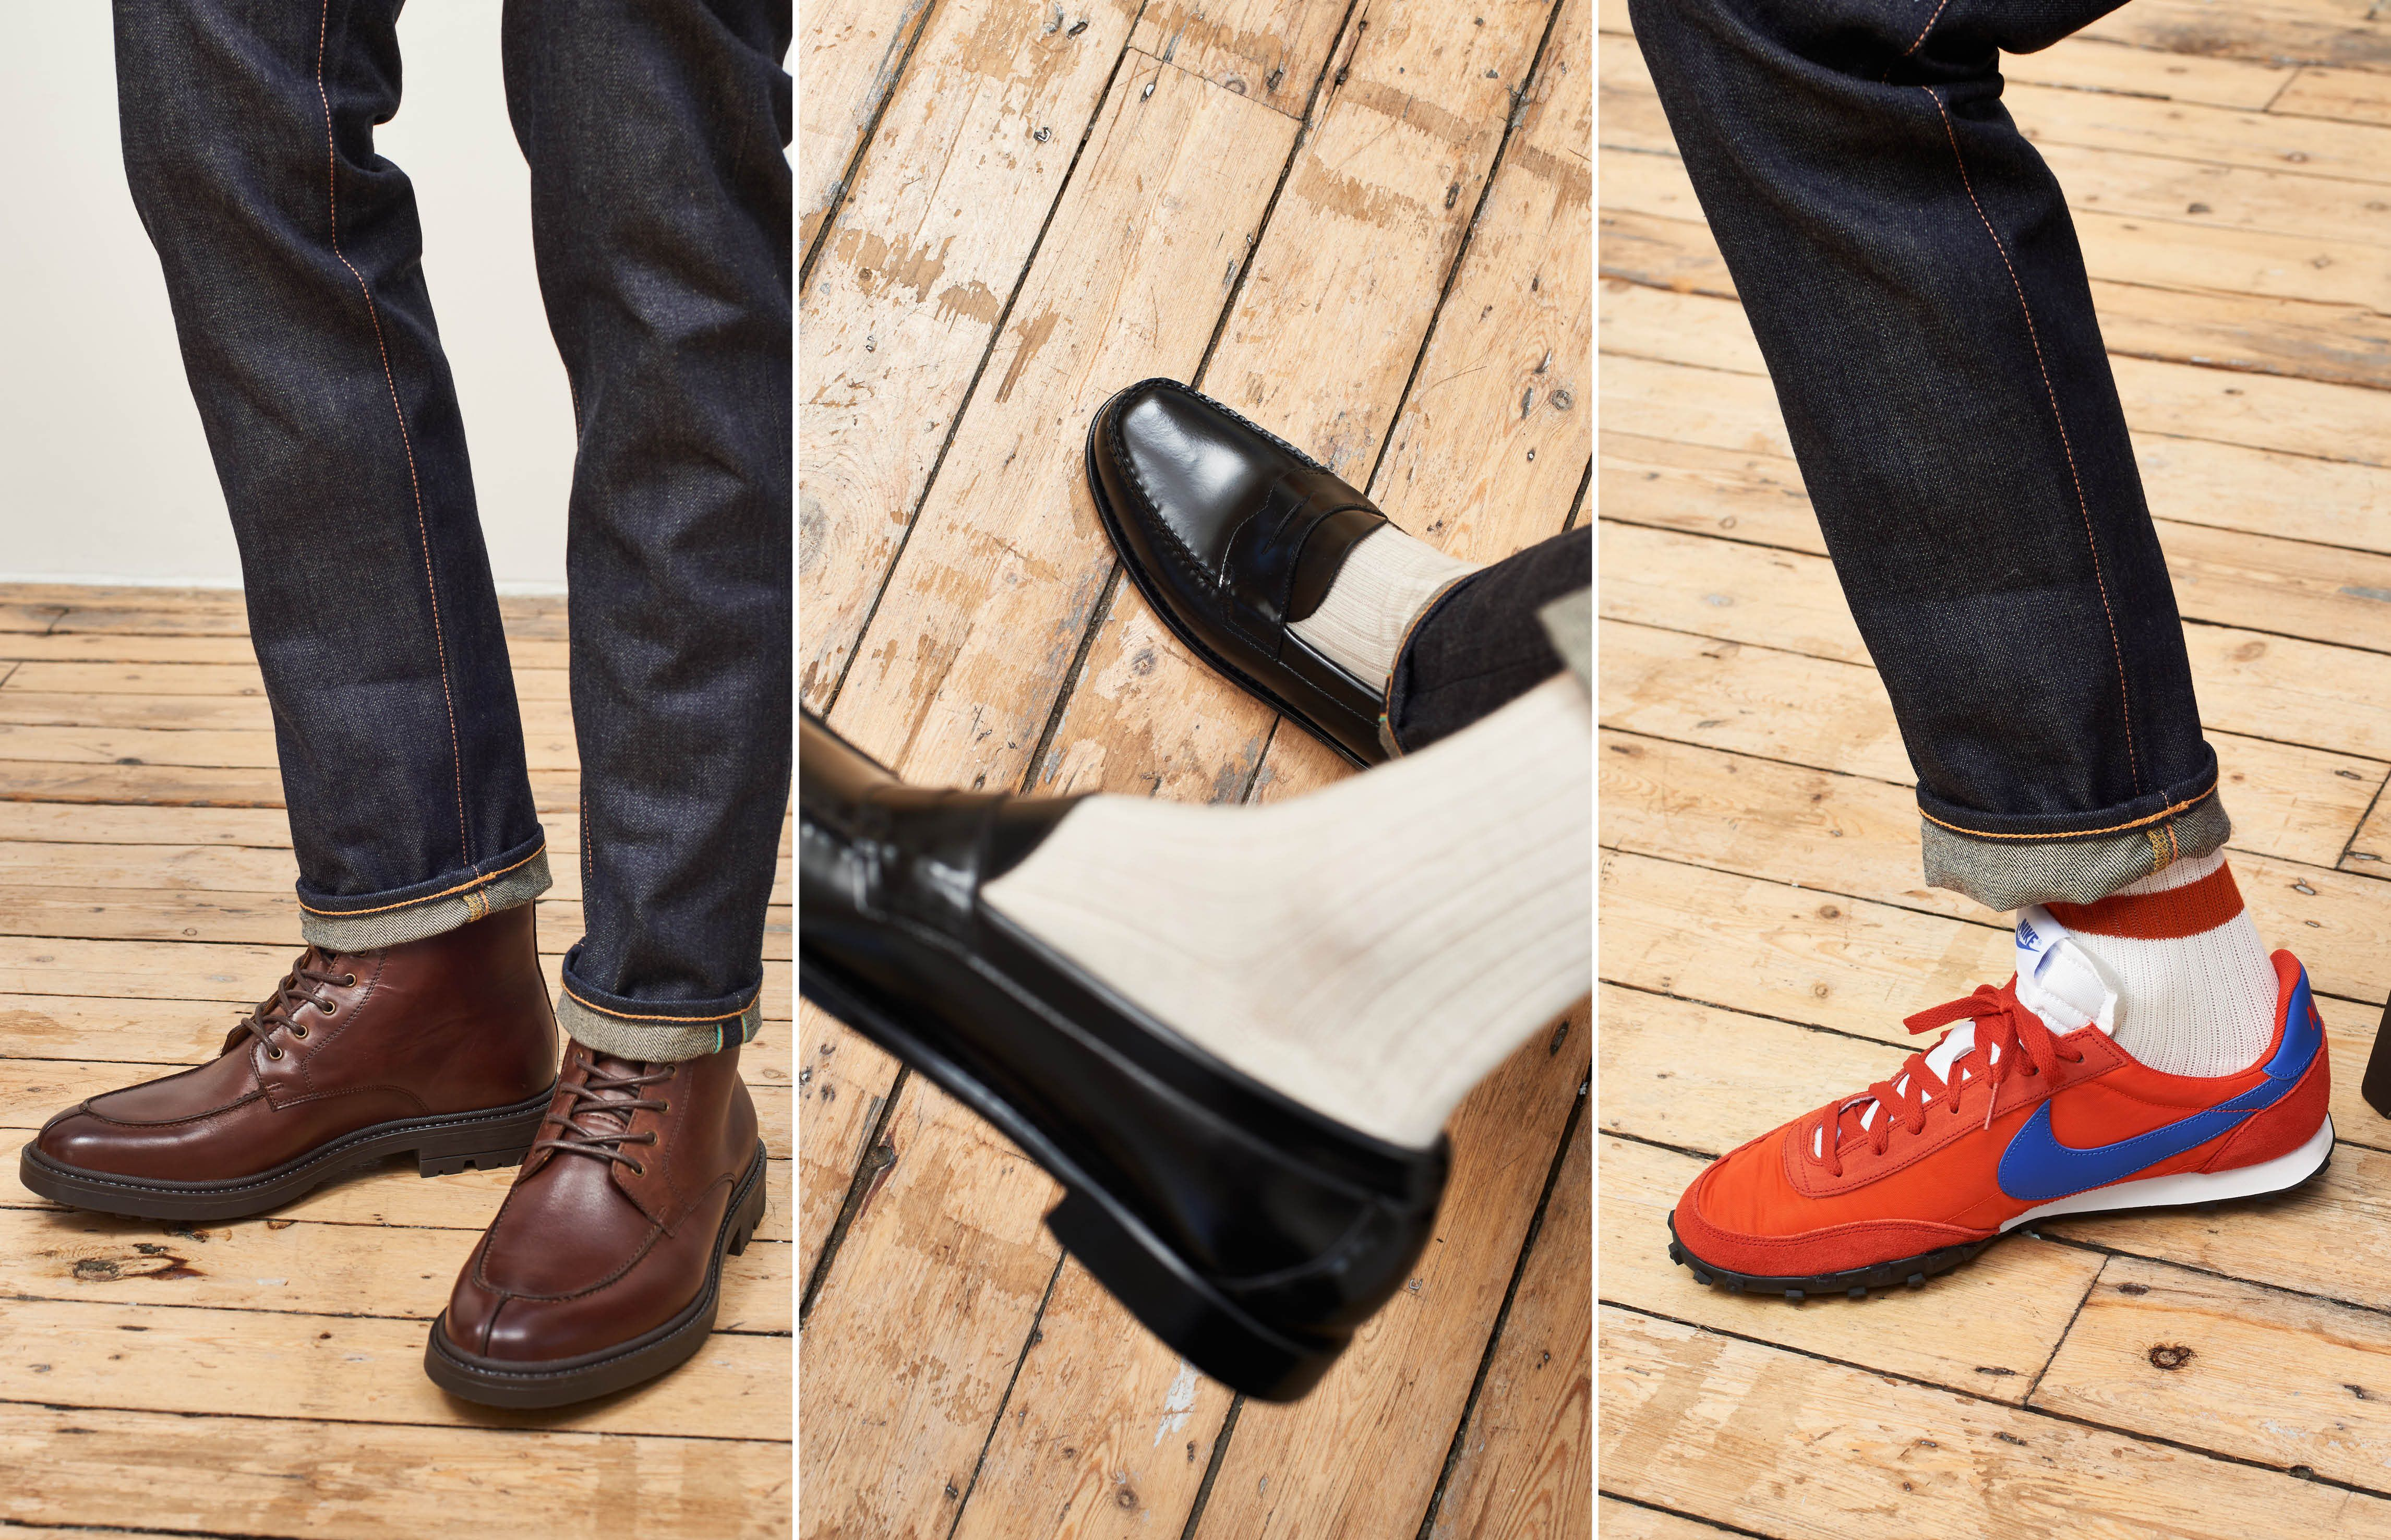 How three different shoes can change one outfit